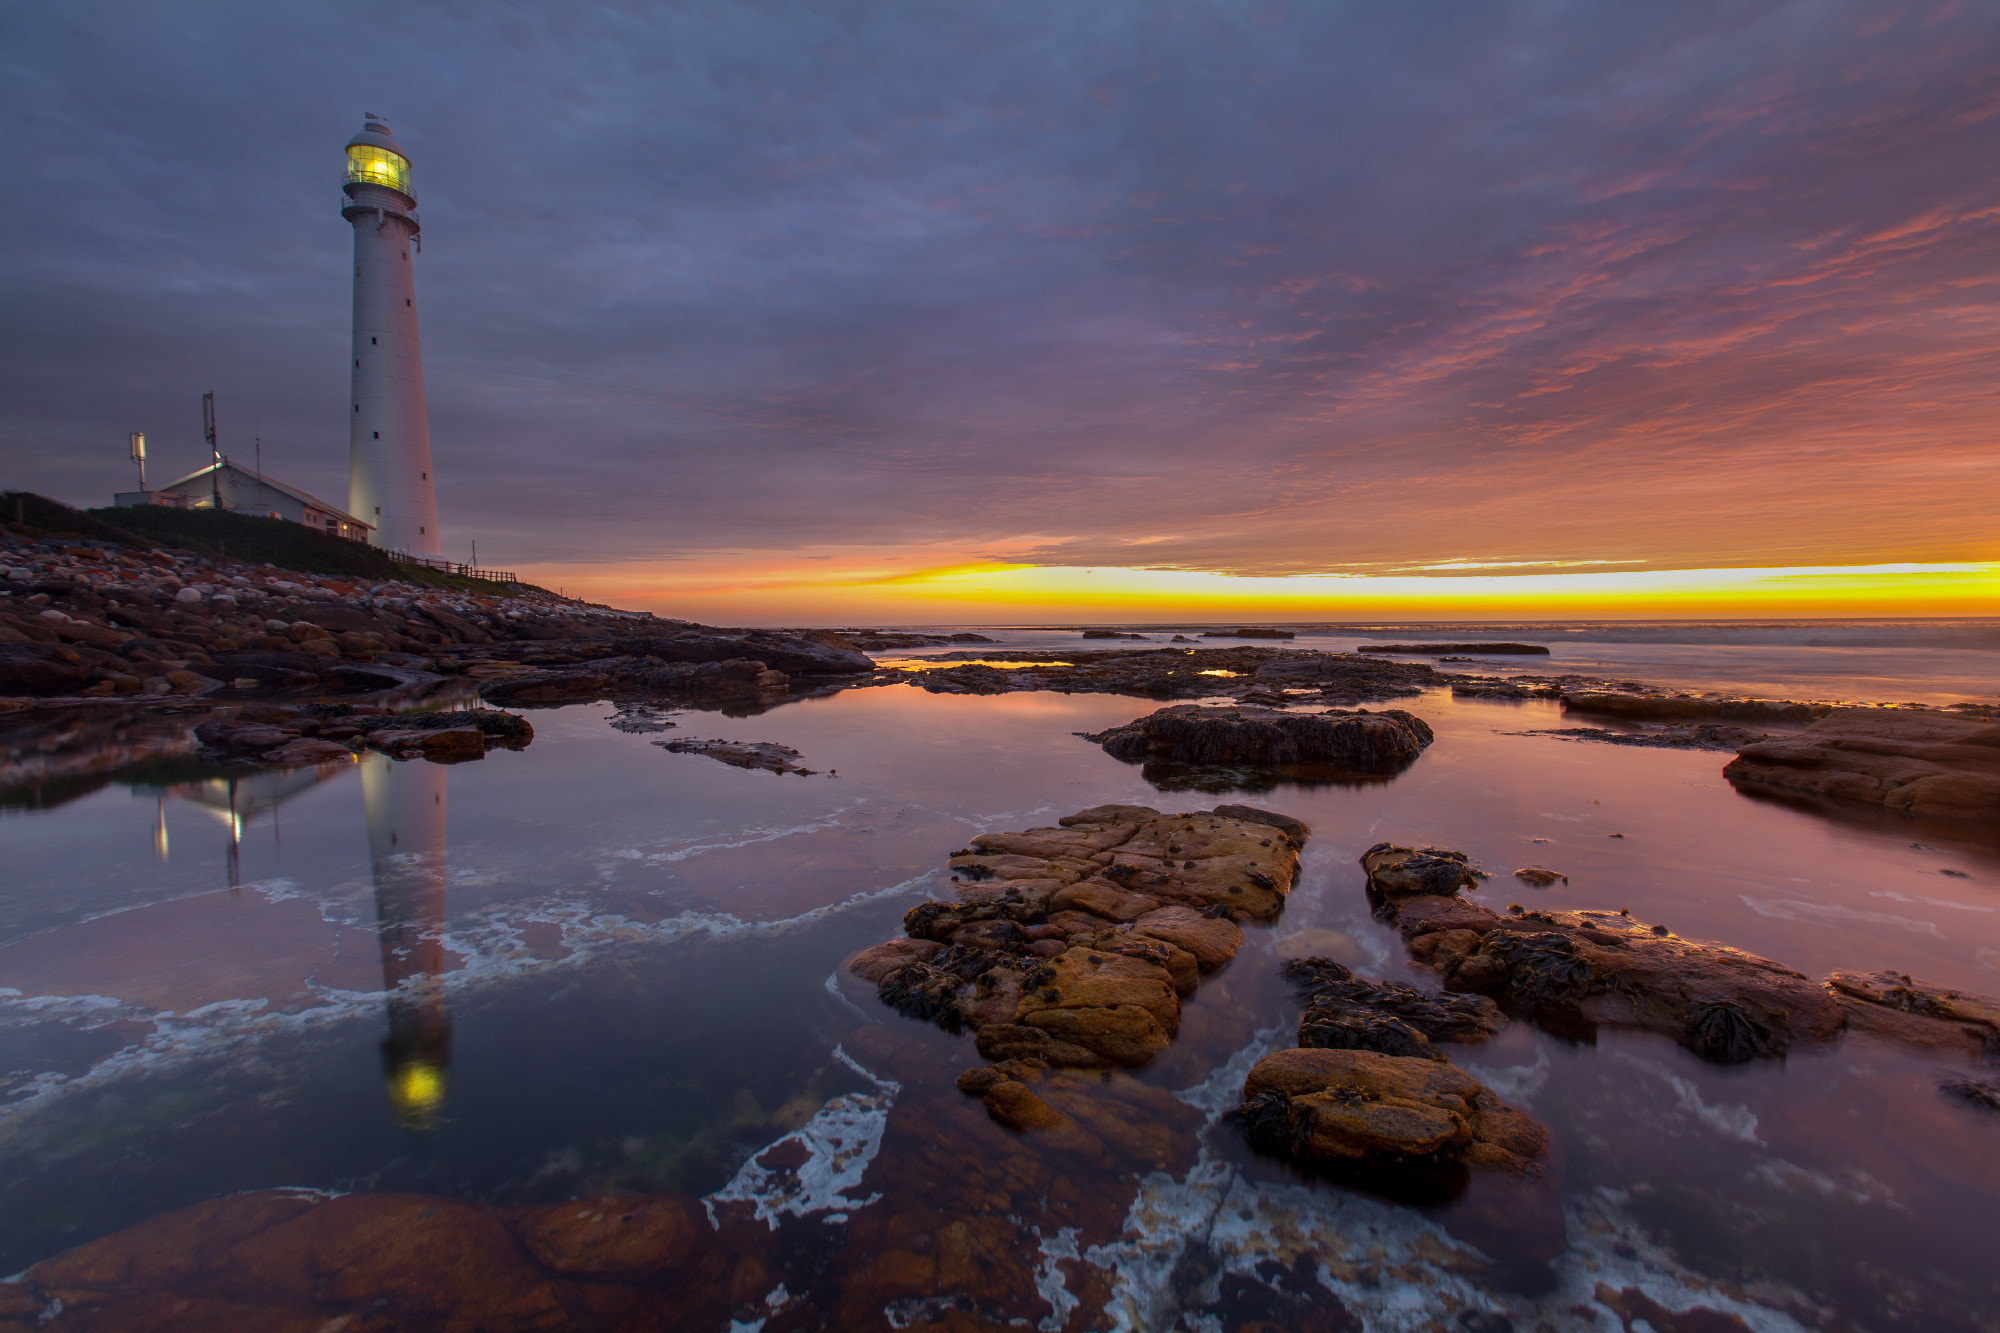 Photograph Slangkop Lighthouse by Michael Wrankmore on 500px